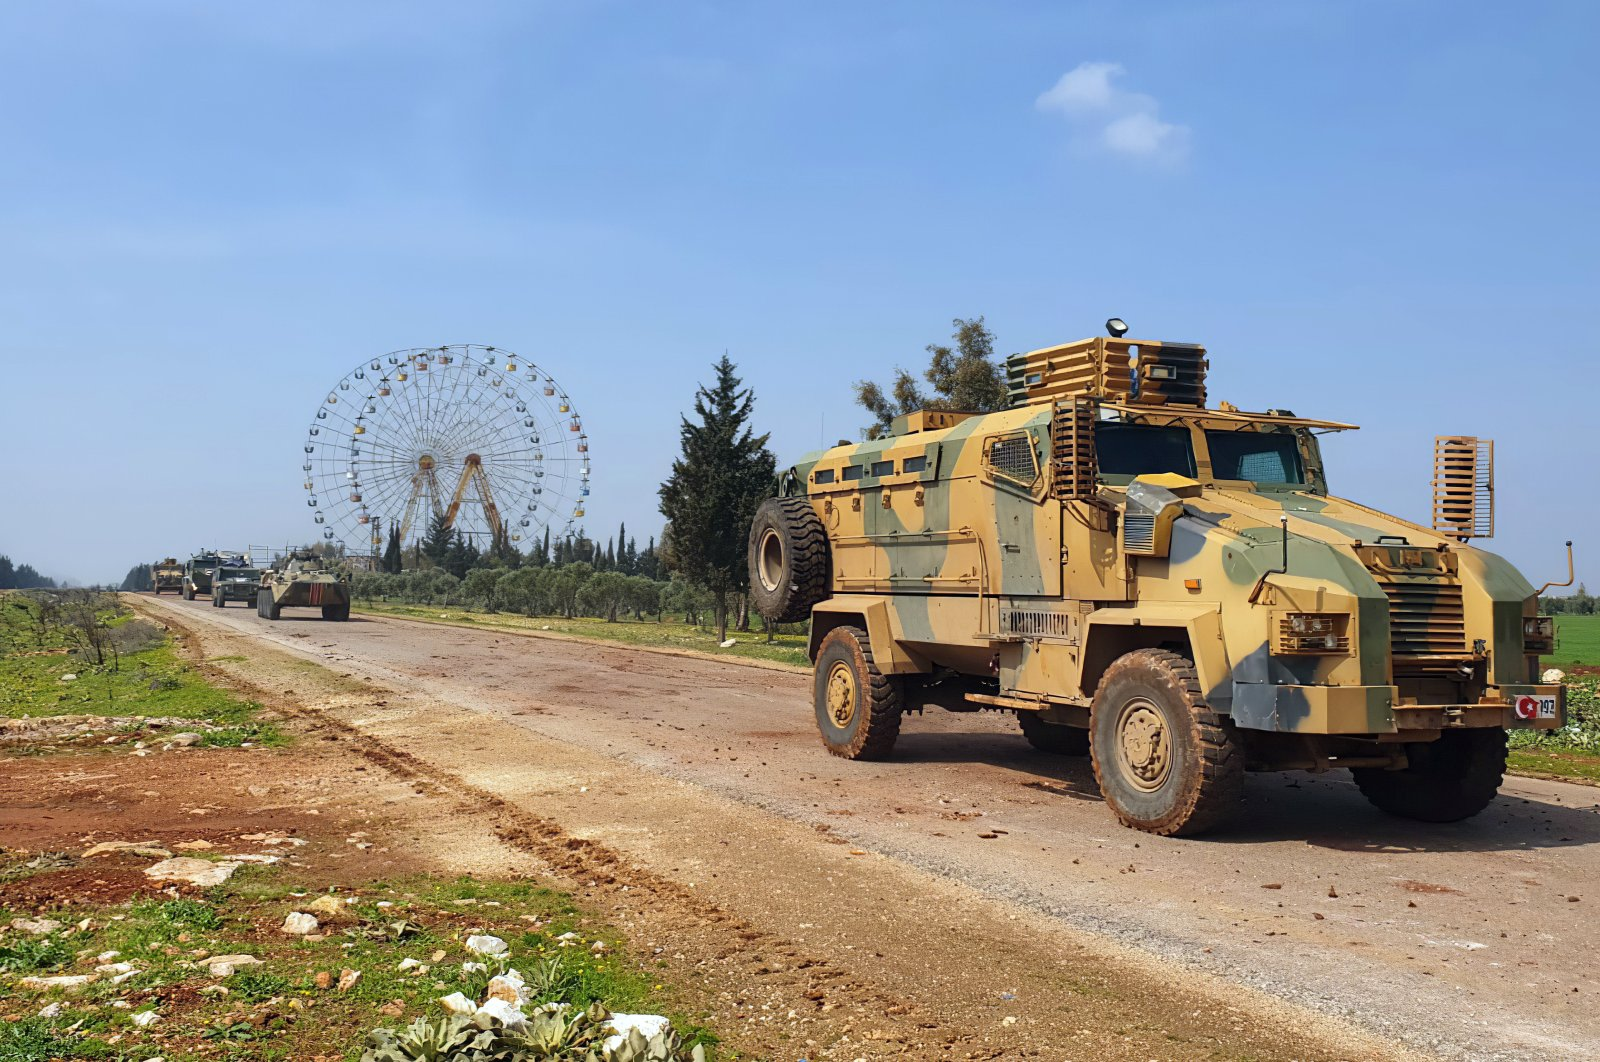 Turkish and Russian troops patrol on the M4 highway, which runs east-west through Idlib province, Syria, March 15, 2020. (Defense Ministry Photo)